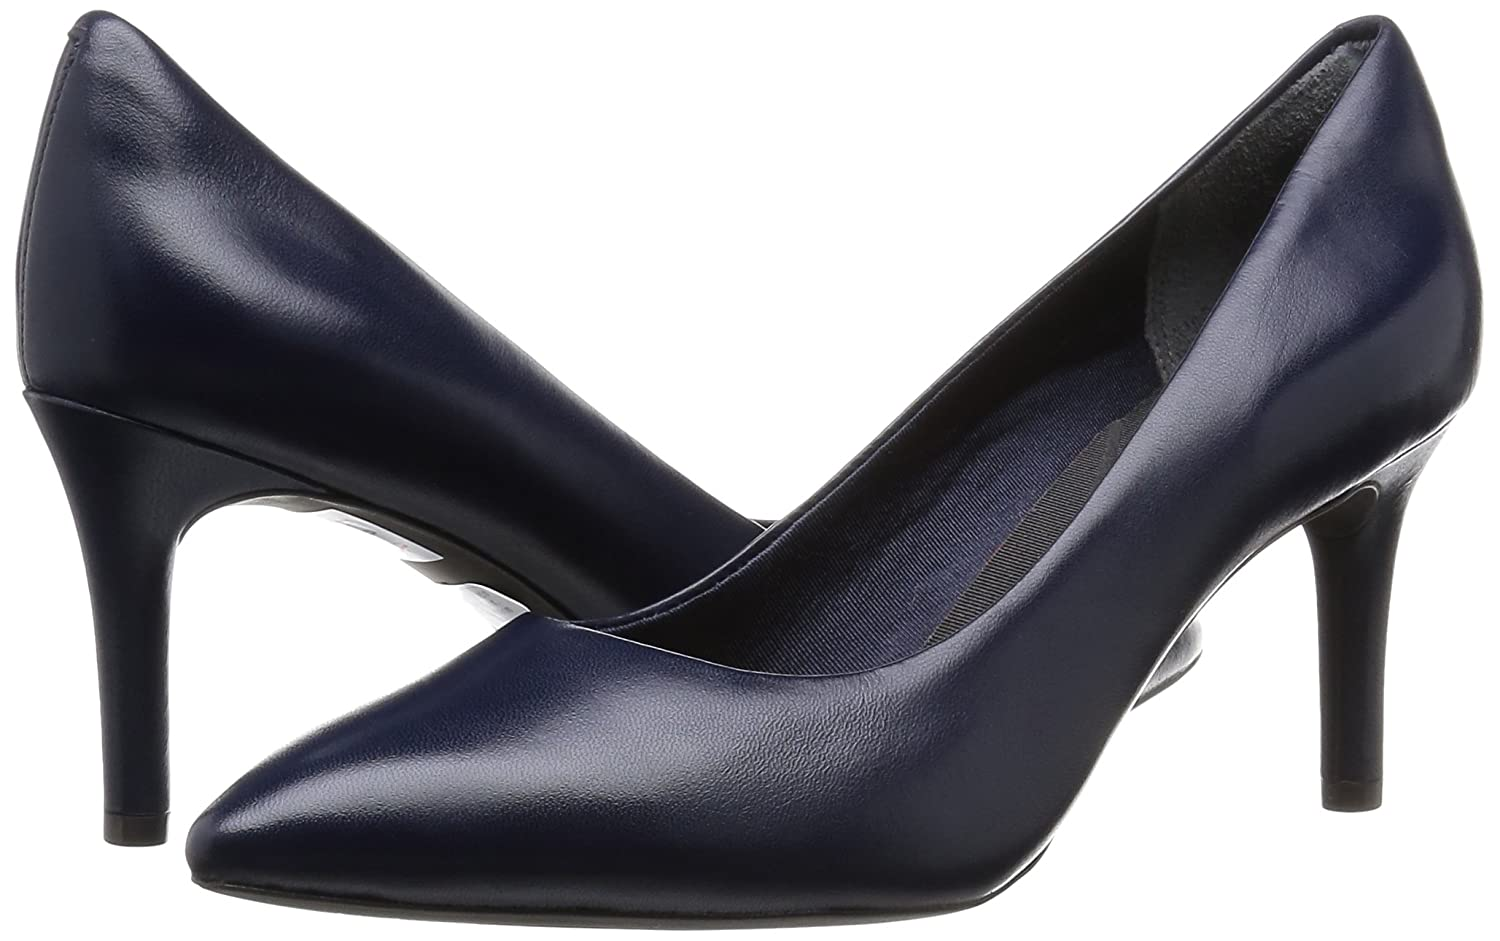 Rockport Damen Total Motion Motion Total 75mm Pointy Toe Pump Pumps Blau (Deep Ocean Nappa) 65ed93